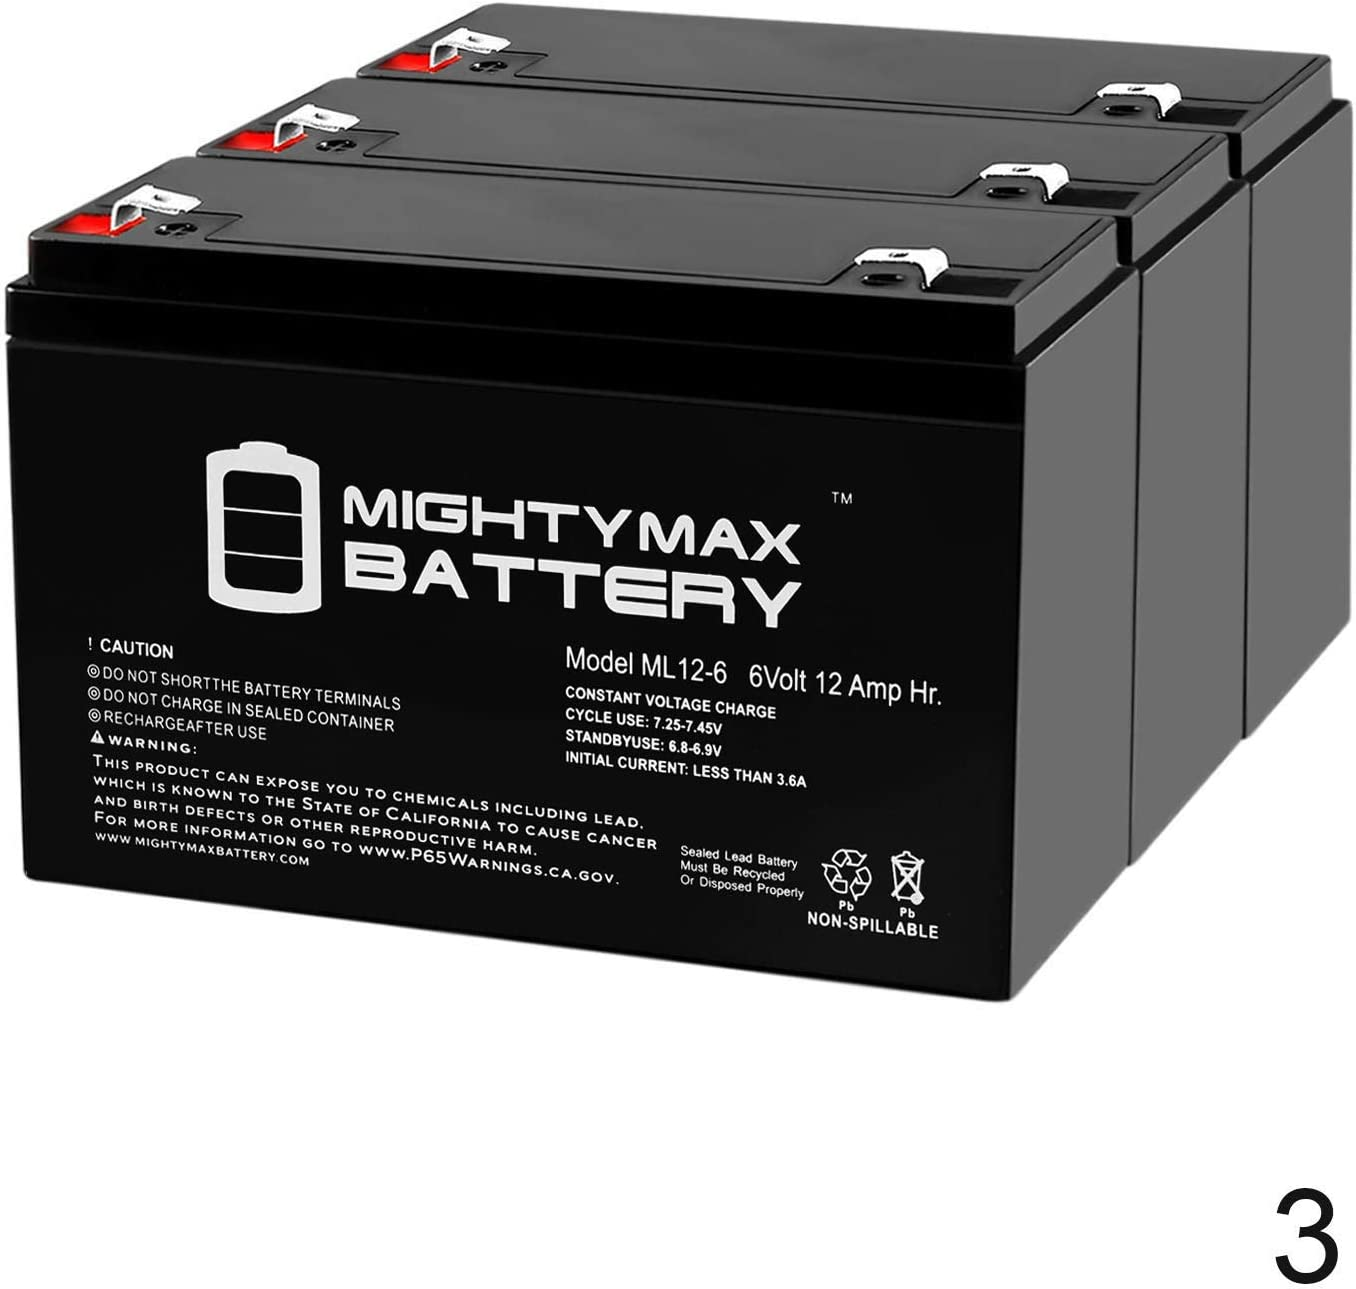 BK900-3 Pack Brand Product Mighty Max Battery 6V 12AH F2 Compatible Battery for APC Back-UPS 900